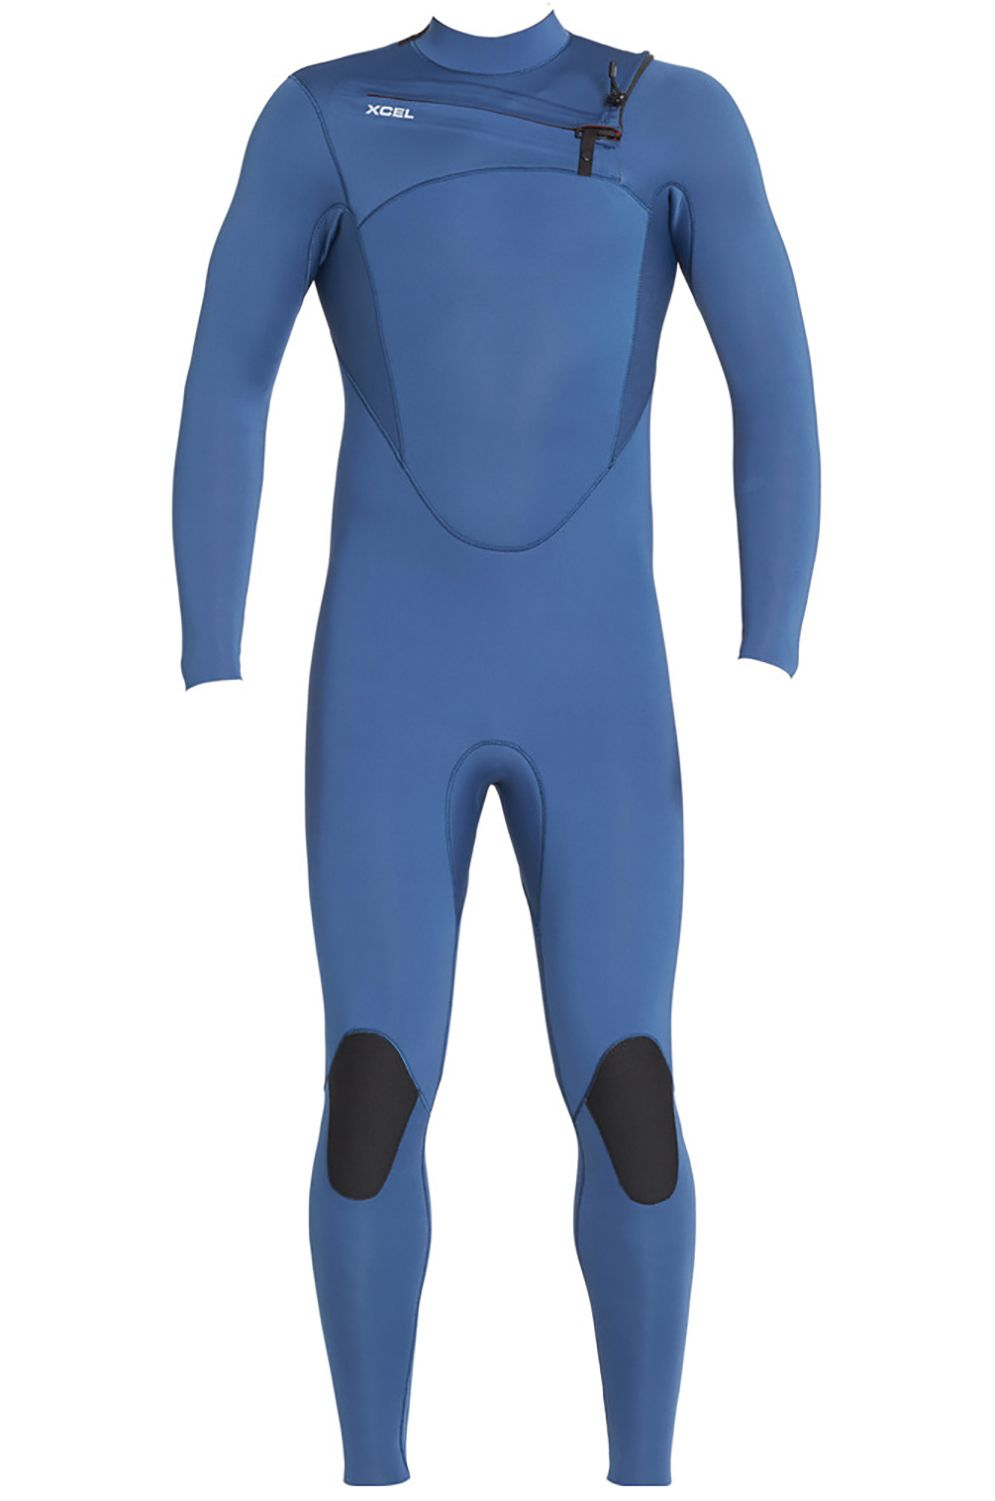 Xcel Wetsuit 3/2MM COMP X2 THERMO LITE FULLSUIT All Cascade Blue 3x2mm